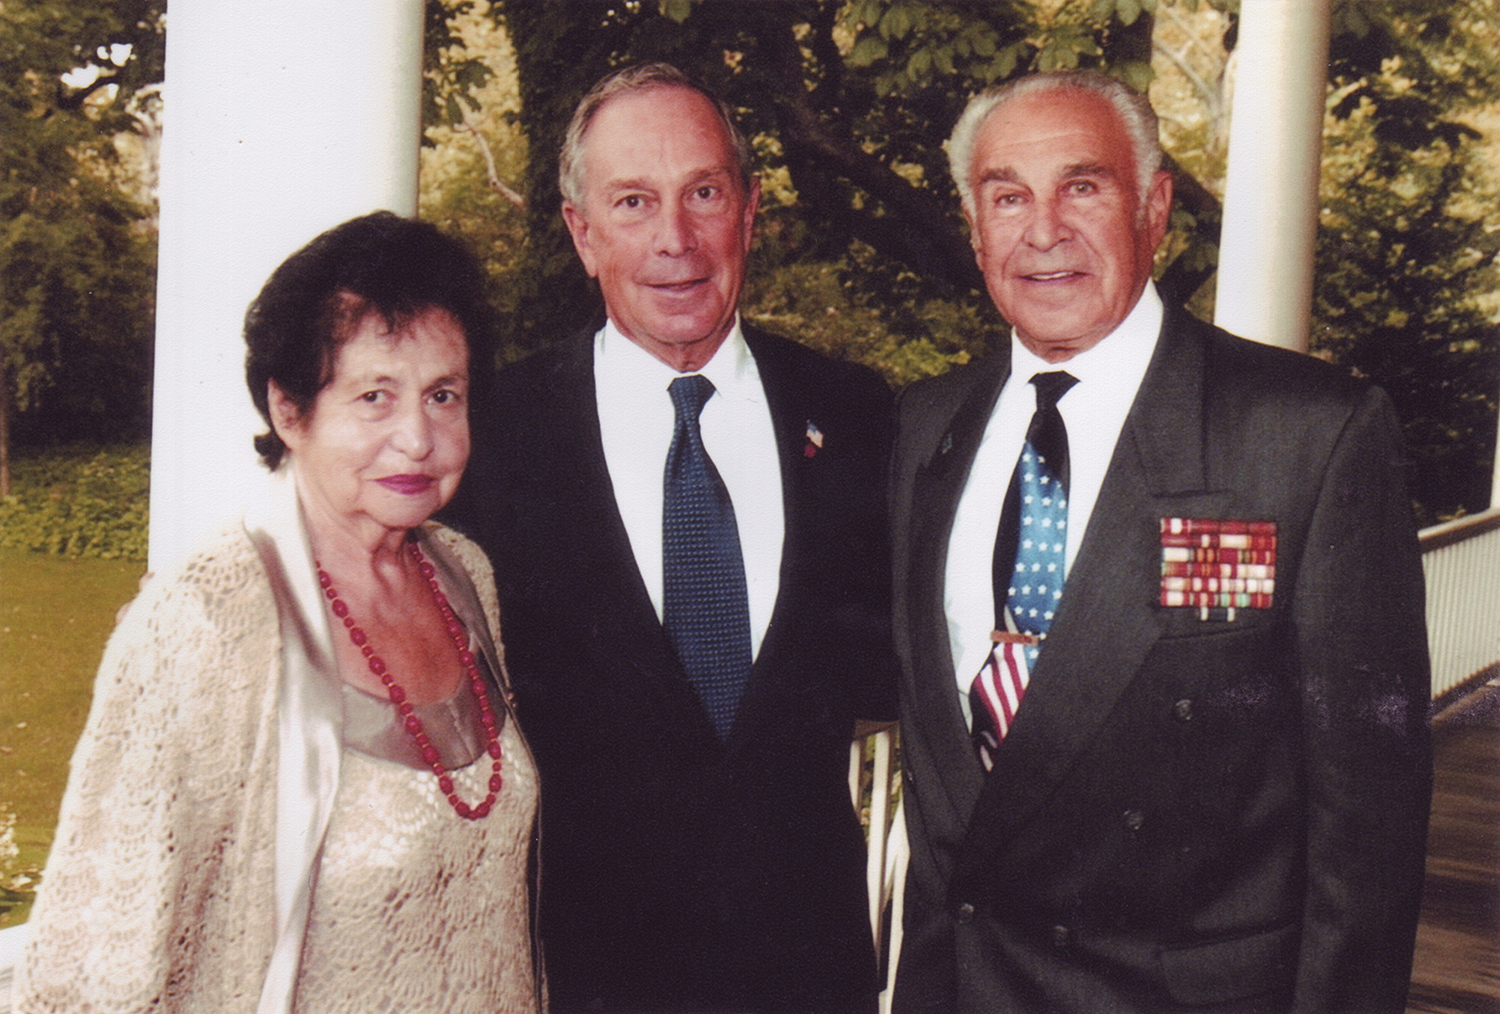 Leonid Rozenberg with wife Fanya and Mayor Bloomberg